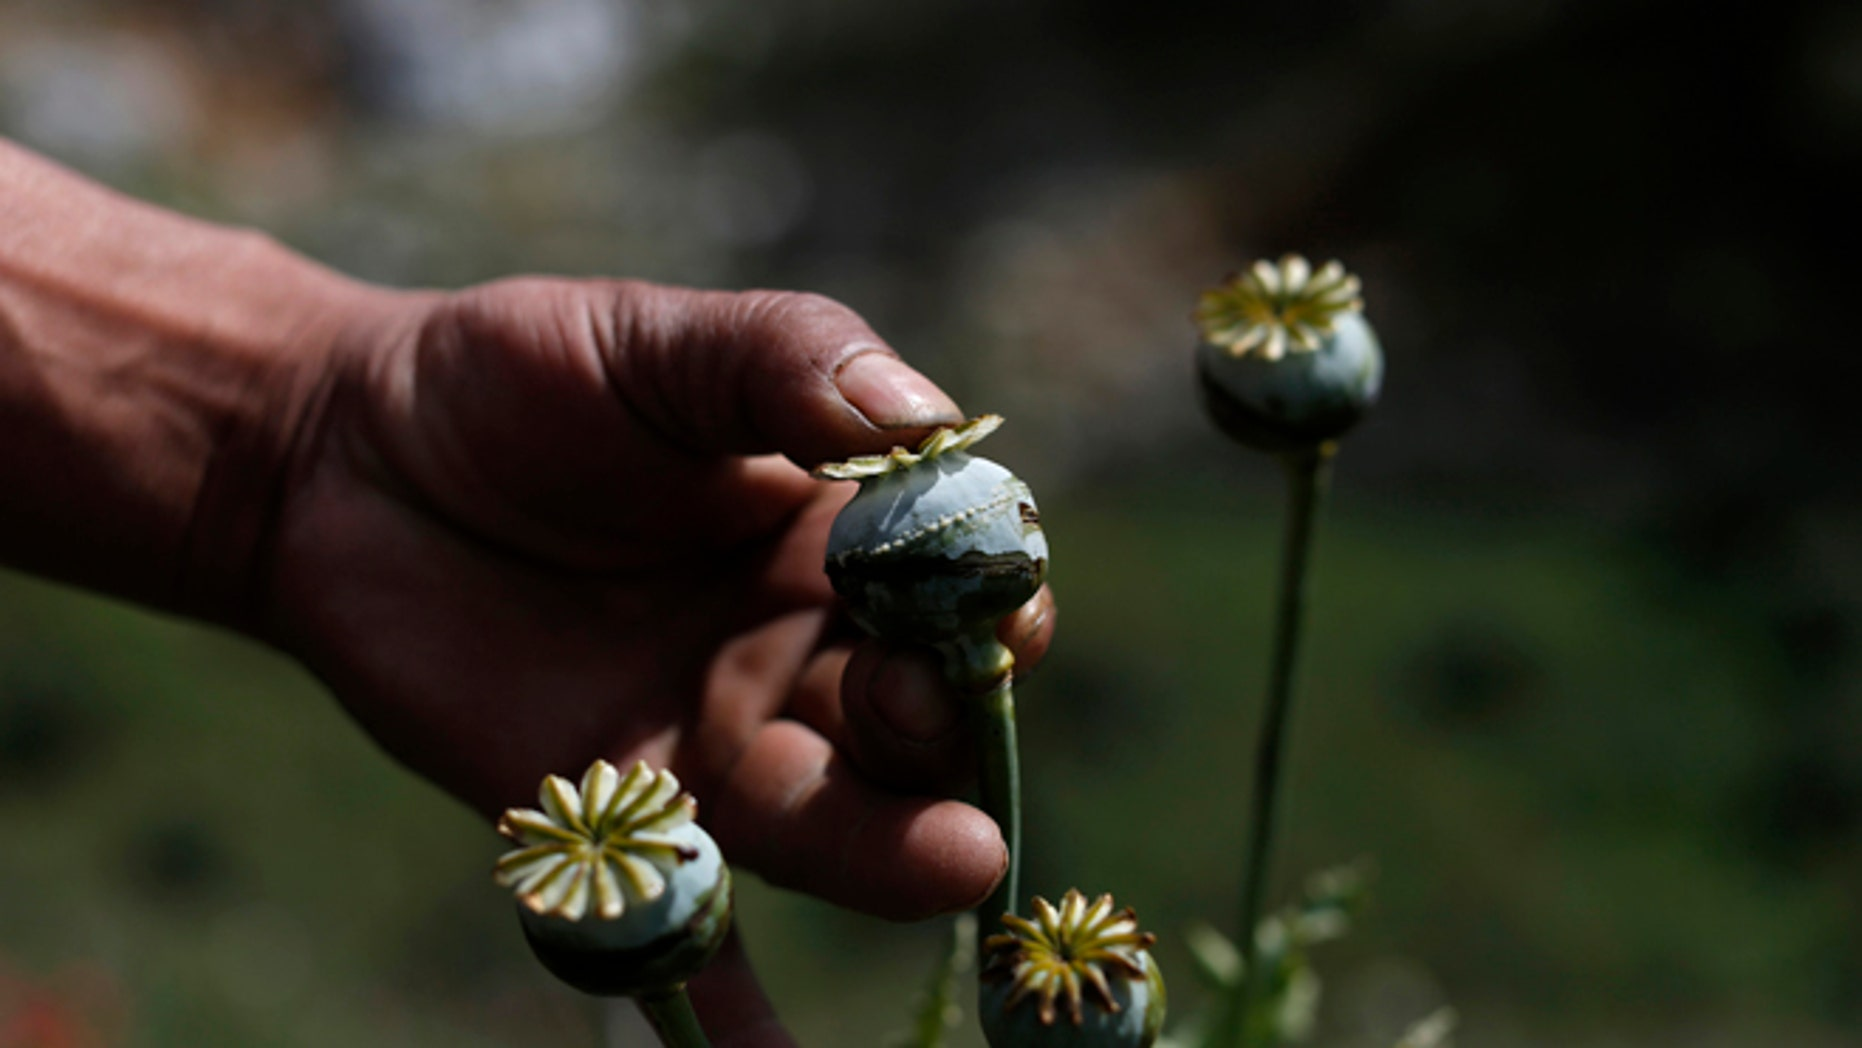 "FILE - In this Jan. 26, 2015 file photo, an opium grower shows how he ""milks"" a poppy flower bulb to obtain opium paste in the Sierra Madre del Sur mountains of Guerrero state, Mexico. Violence continues in Iguala because the town's most lucrative business still thrives: the opium trade. The city sits halfway between Mexico City and Acapulco in the state of Guerrero, surrounded by steep mountains where farmers milk fields of poppies for opium paste. (AP Photo/Dario Lopez-Mills, File)"